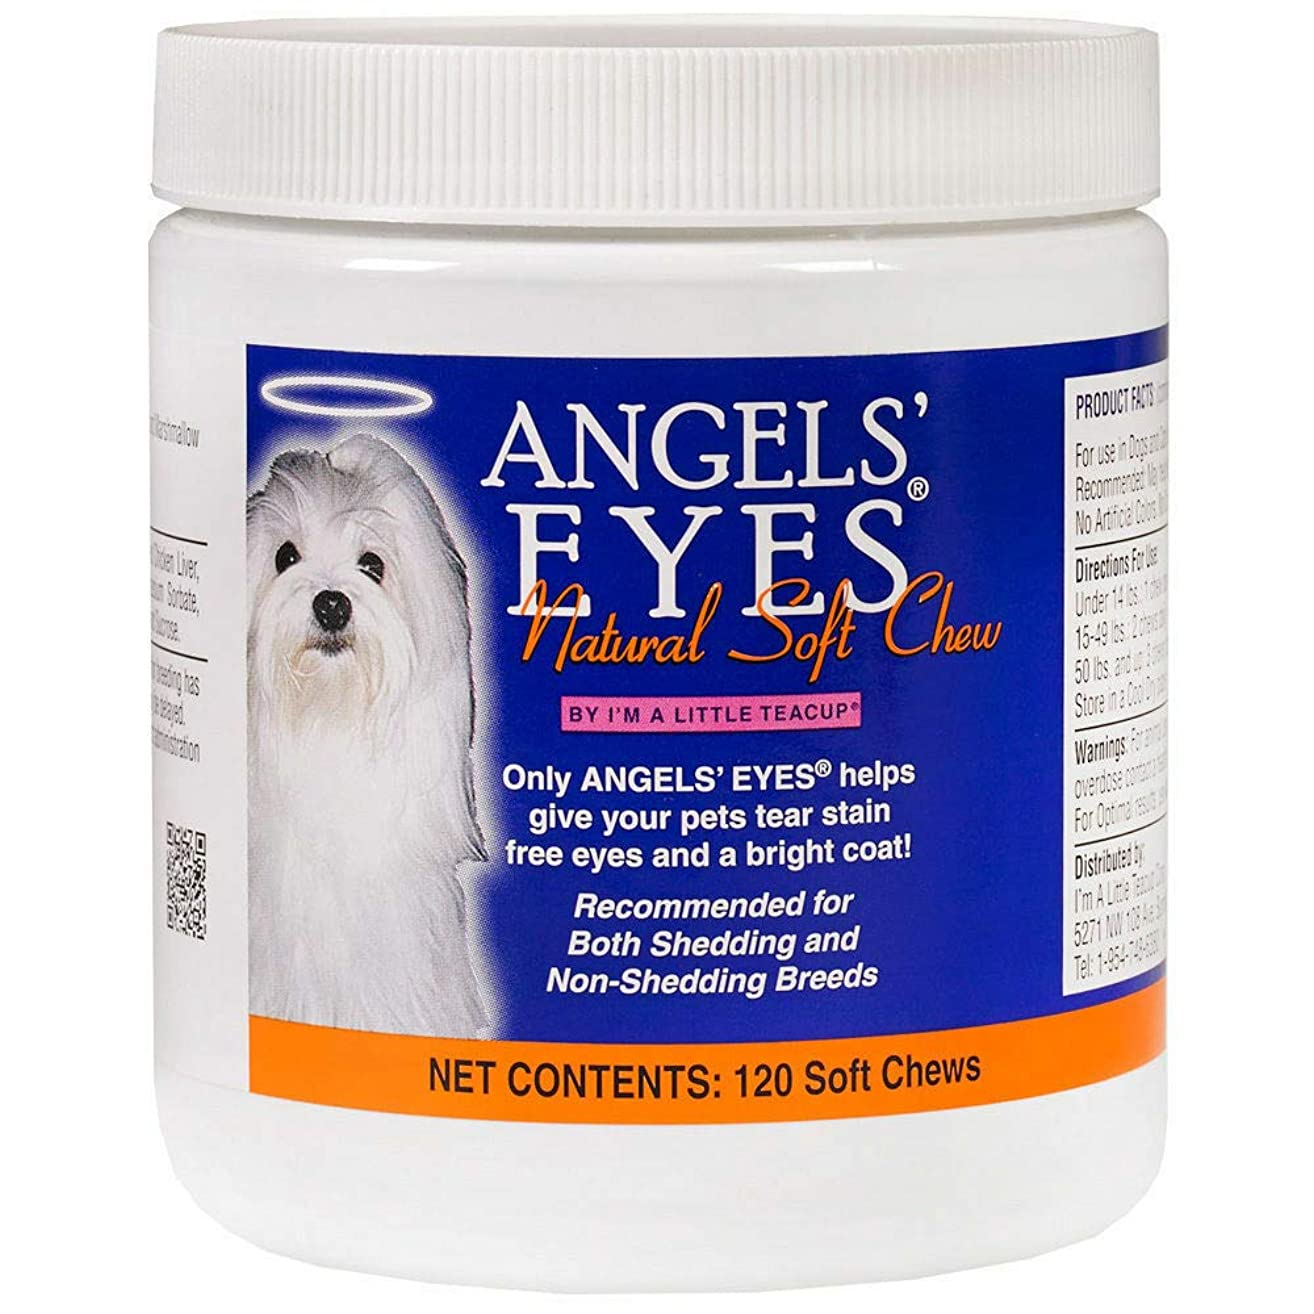 Angel's Eyes Natural Stain Remover Soft Chews for Dogs 120ct